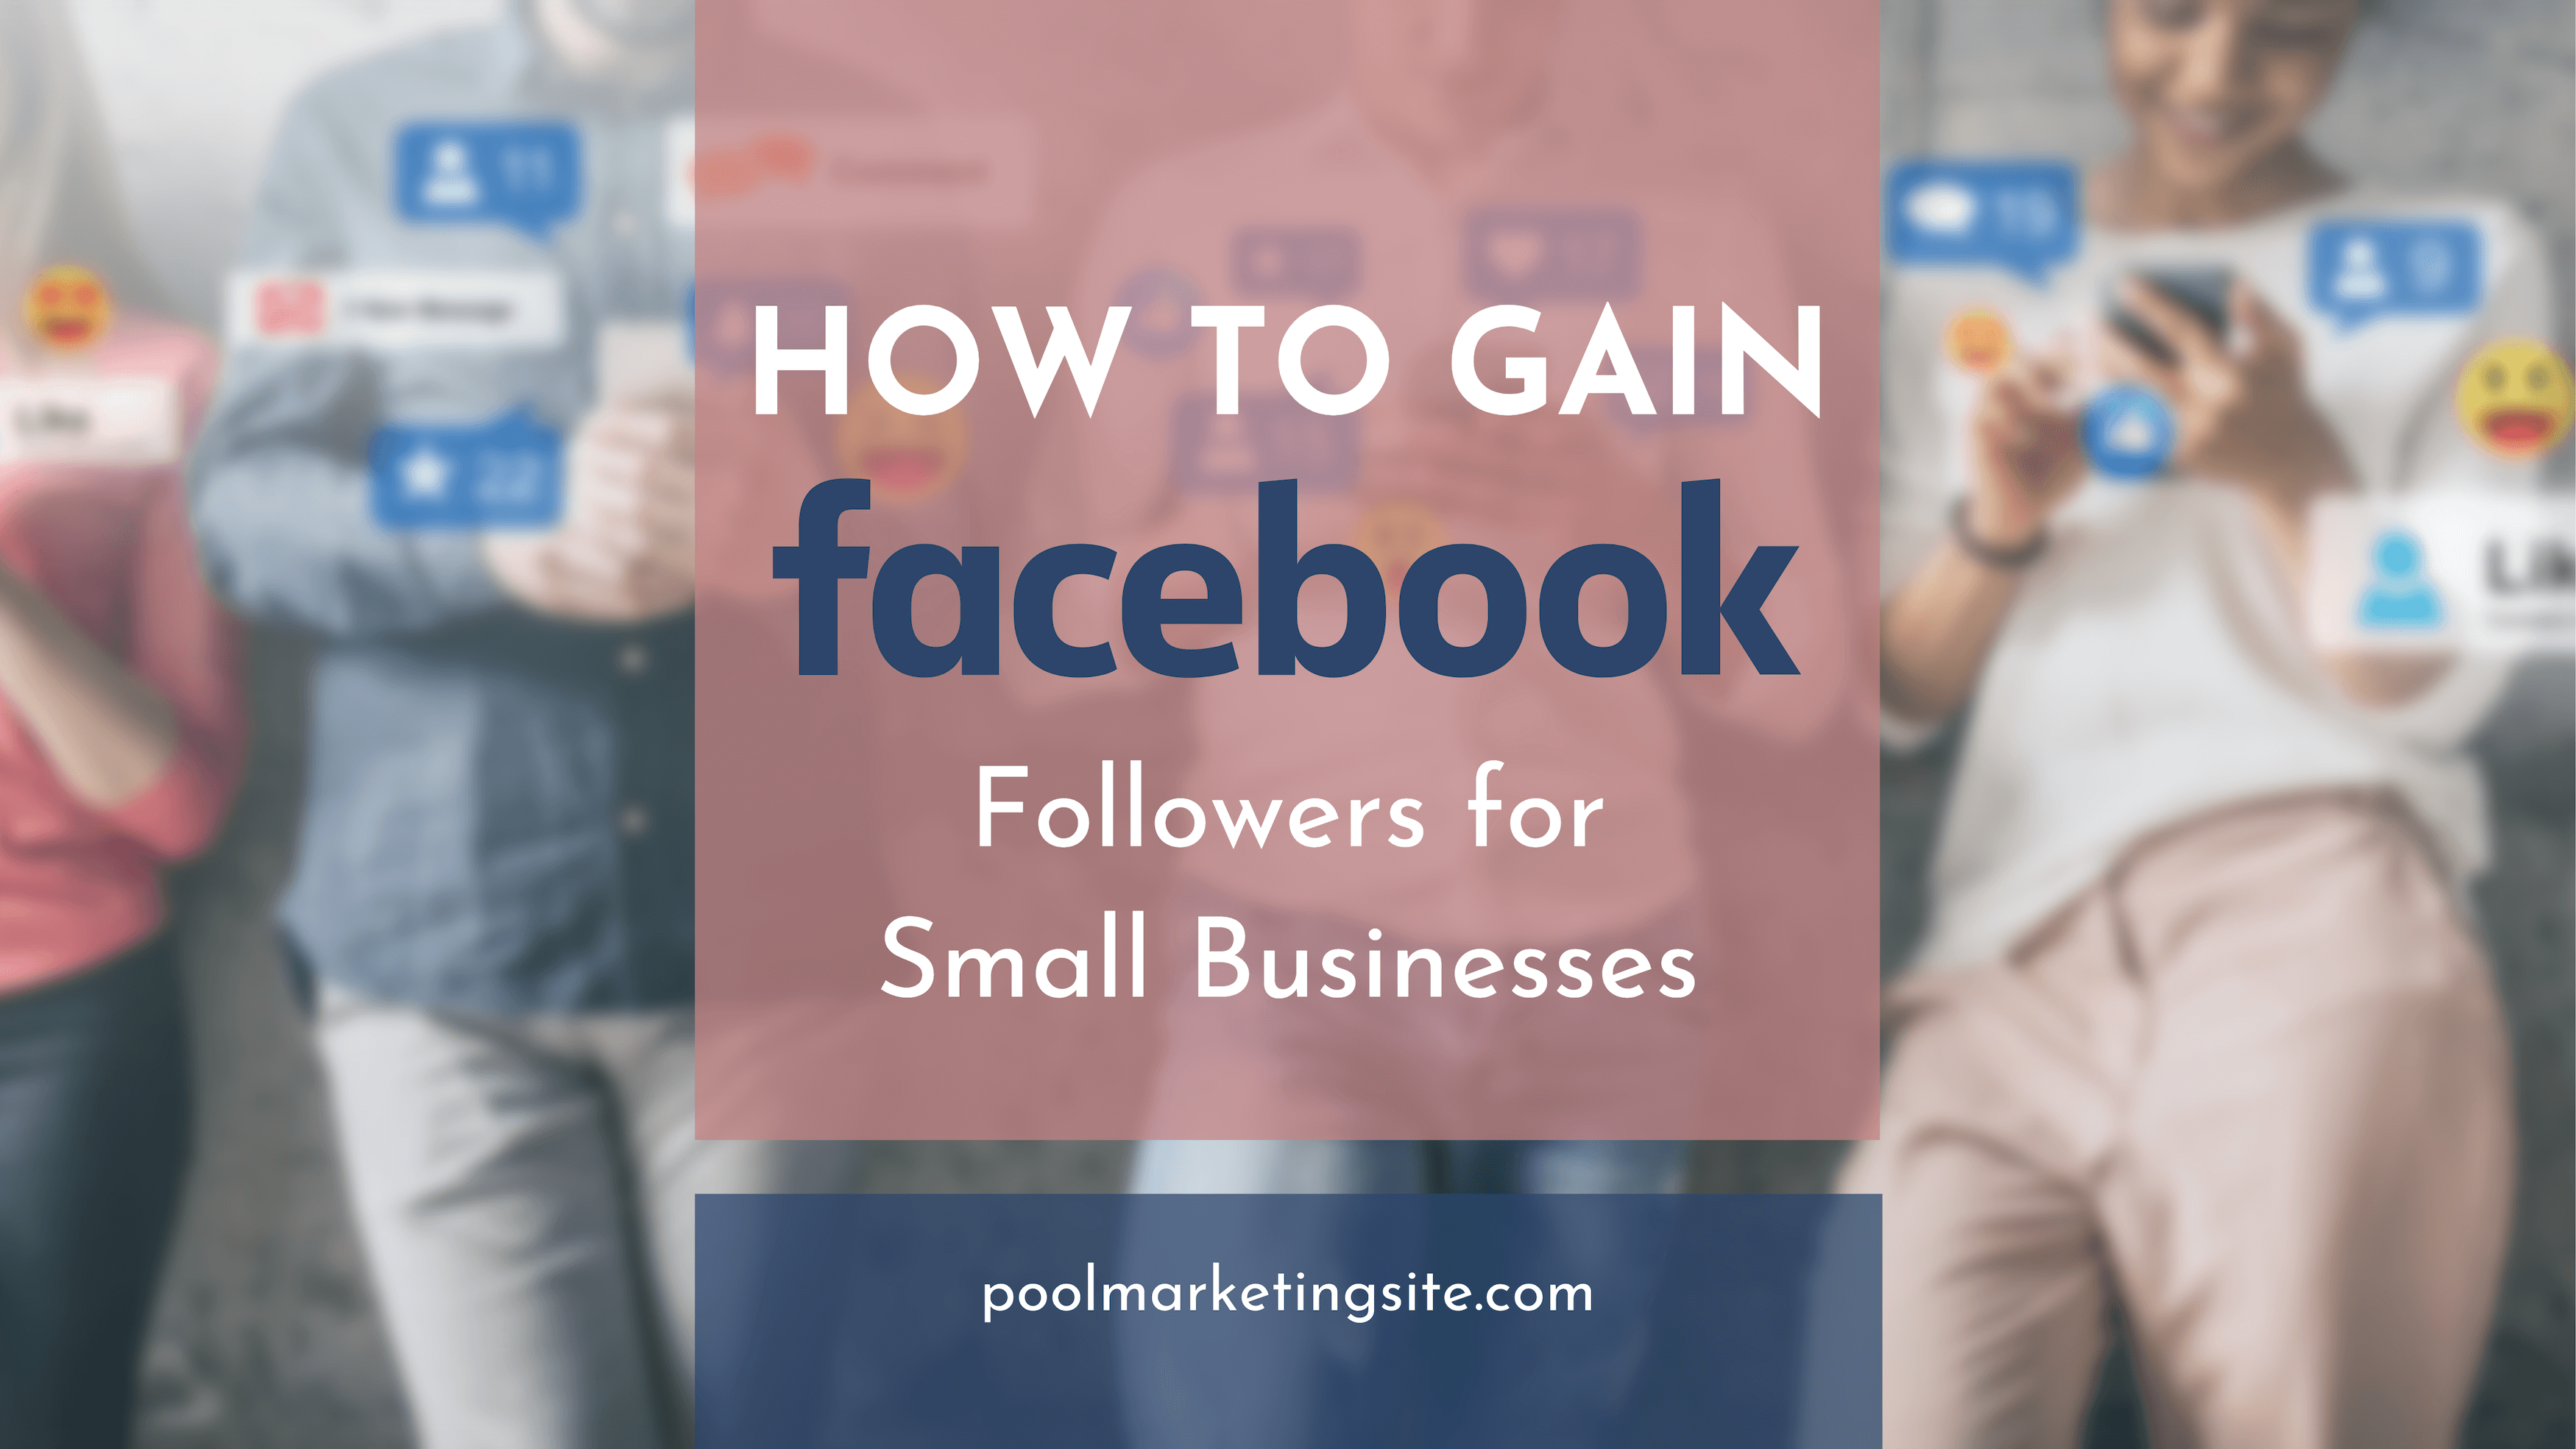 How to Gain Facebook Followers for Small Businesses